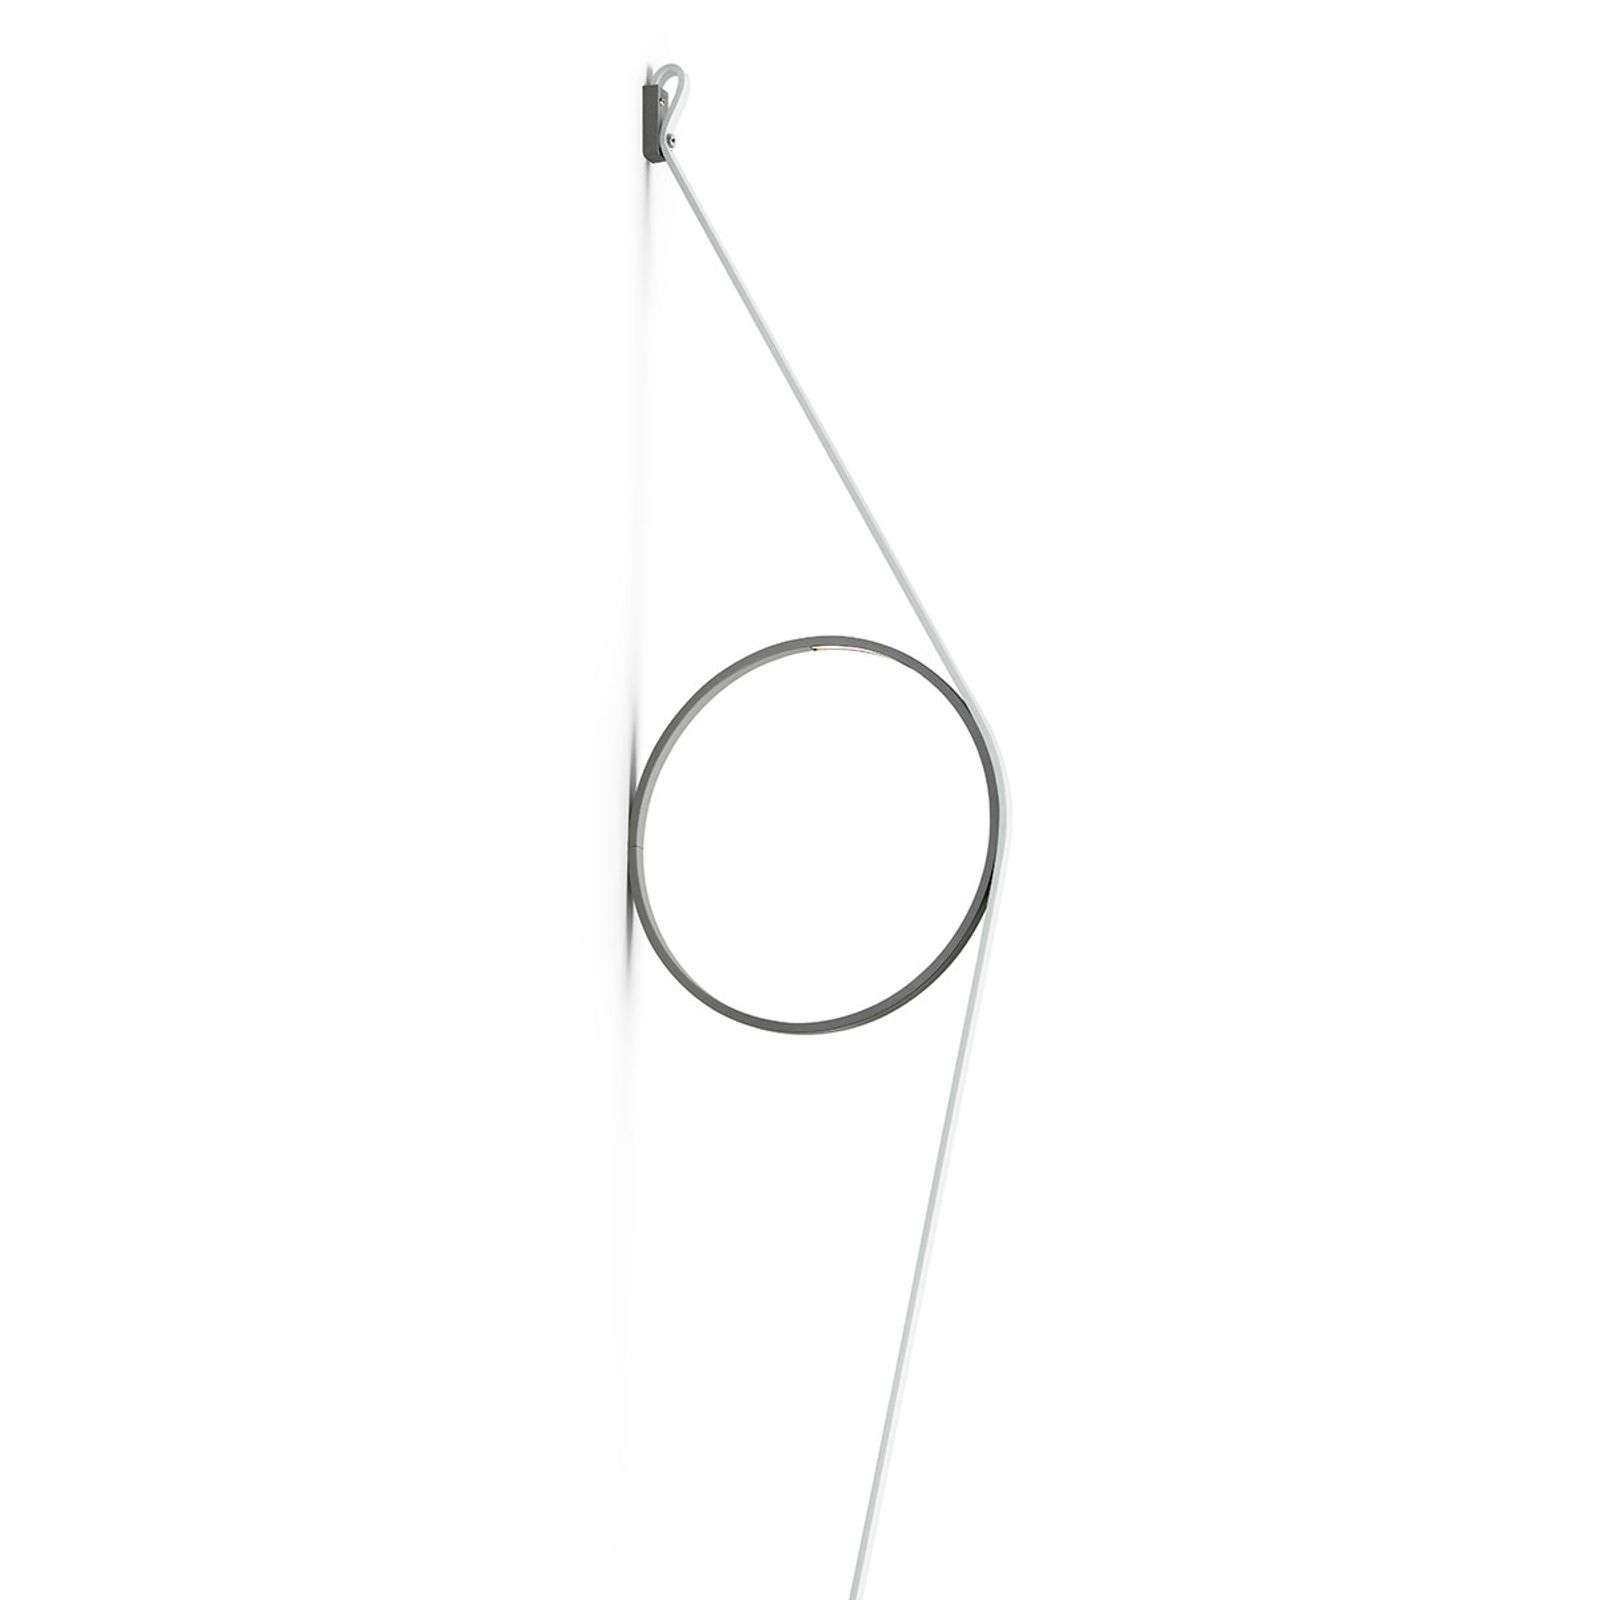 FLOS Wirering wit LED wandlamp, Ring zwart